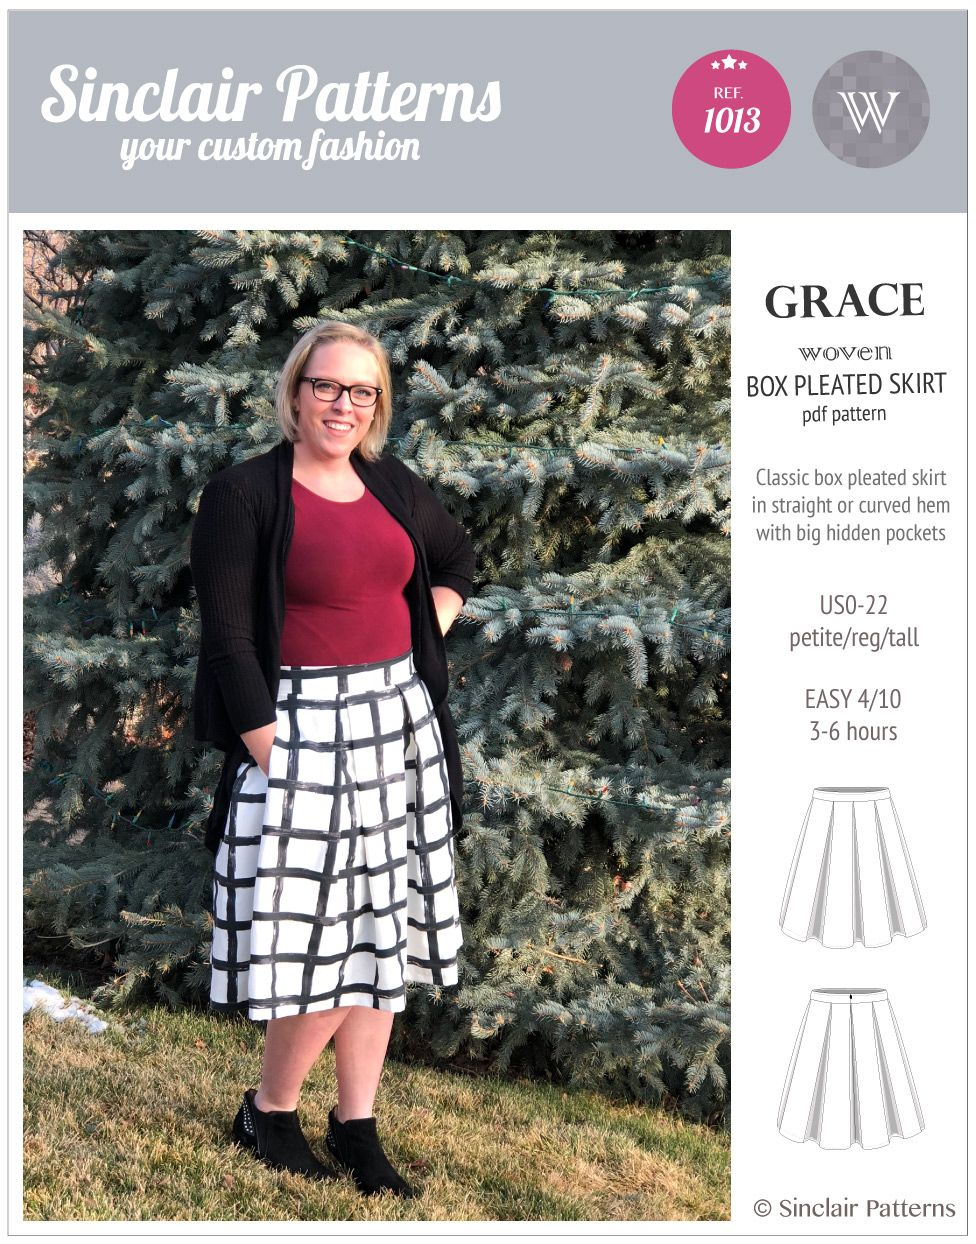 Grace Box Pleated Lined Woven Skirt With Pockets Pdf Skirts With Pockets Skirts Box Pleats